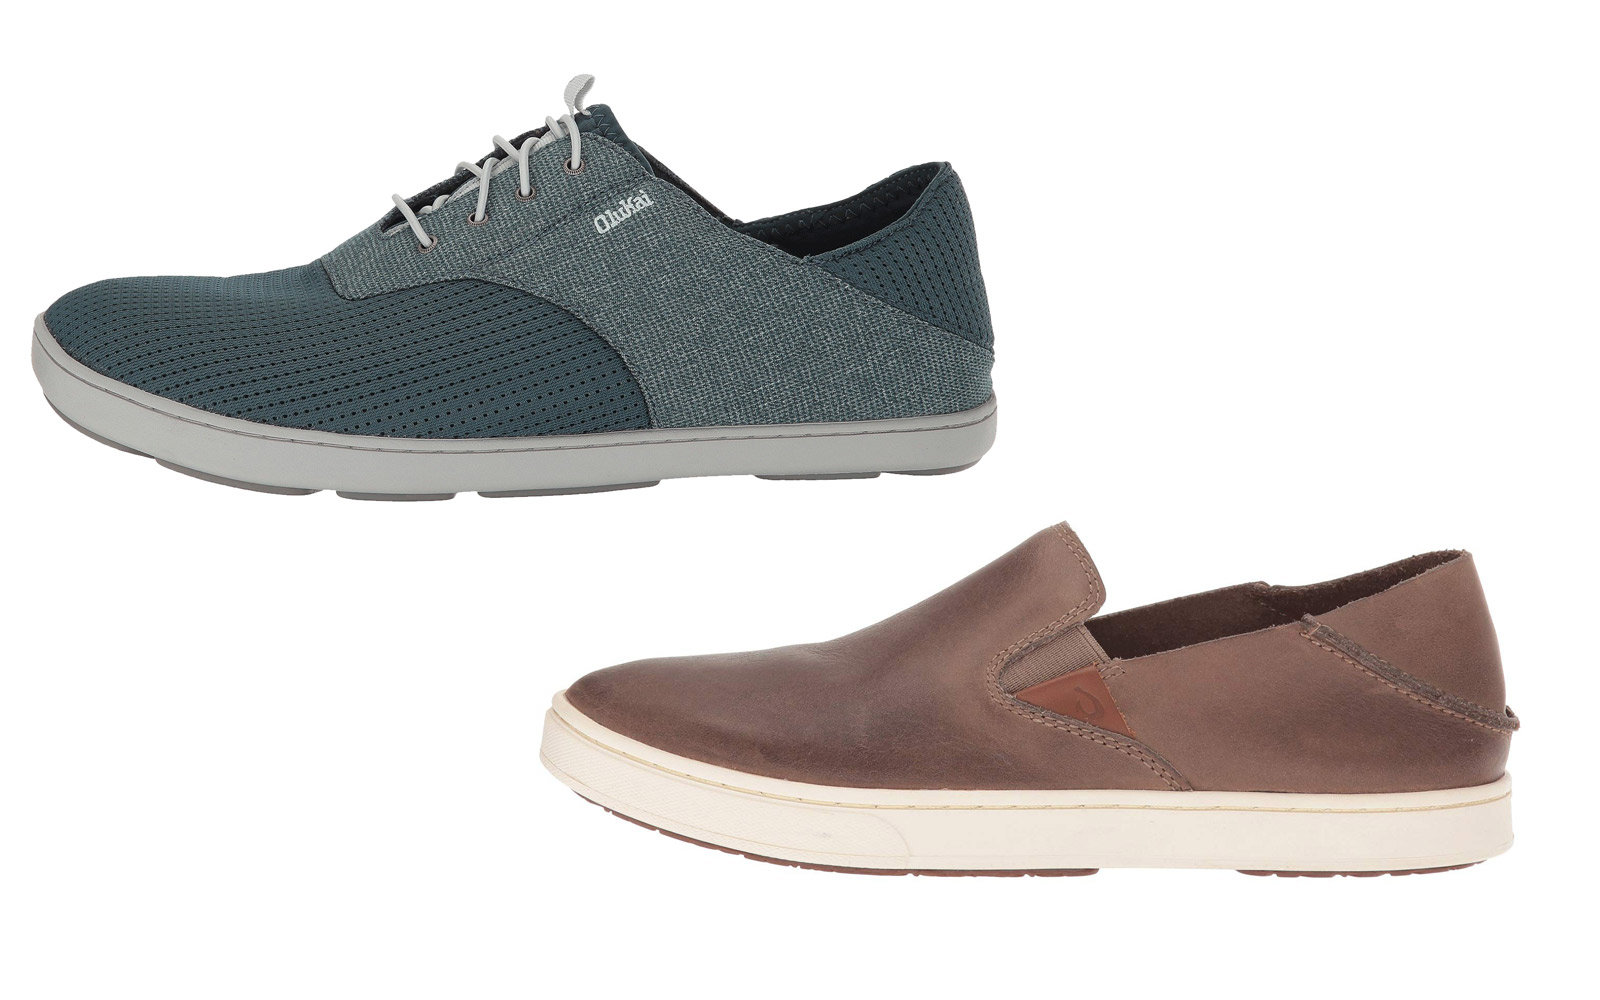 5f6084c1550aef OluKai. best comfort shoes brands olukai. Courtesy of Zappos